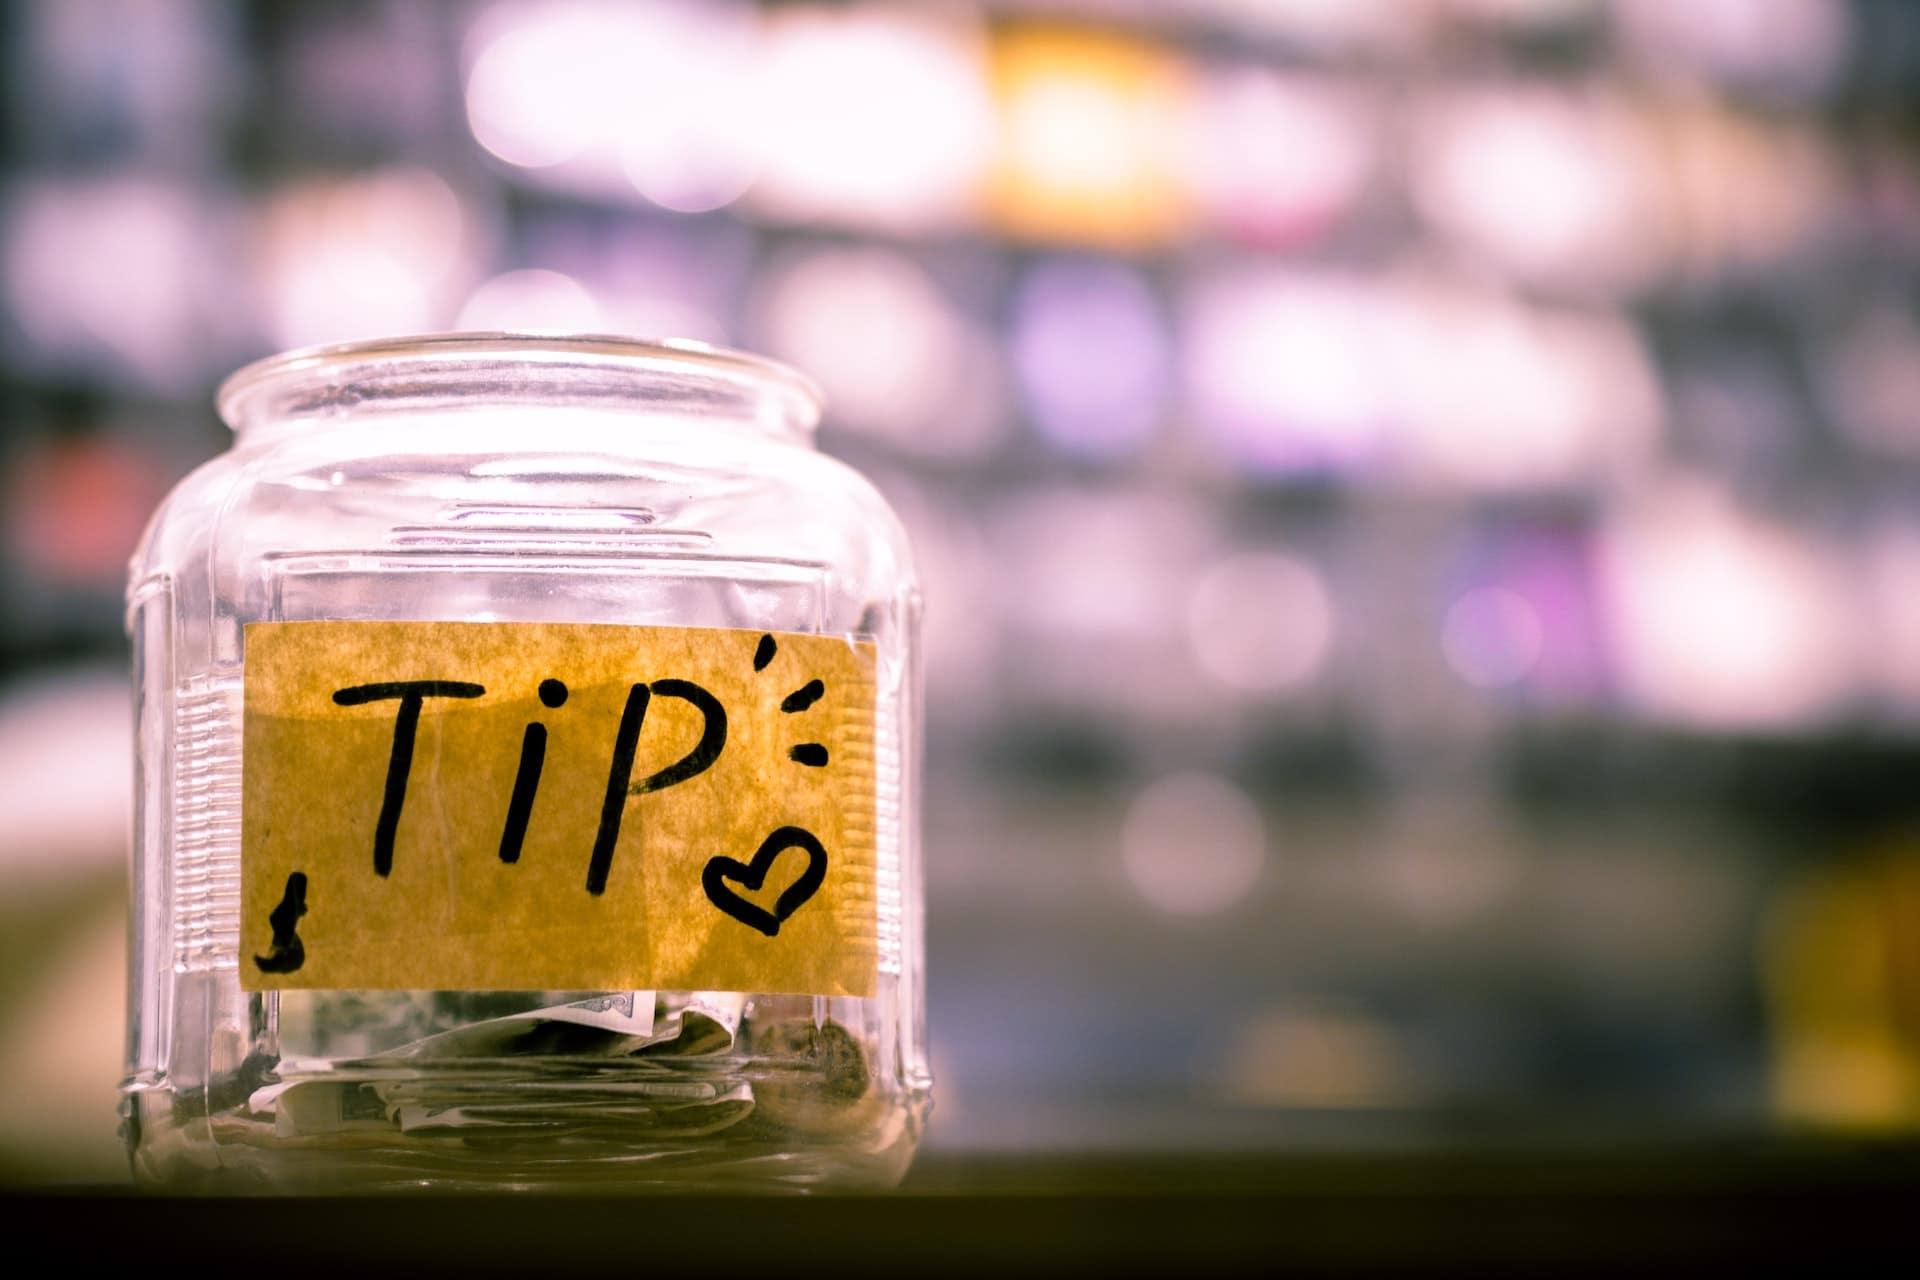 Cozumel Tipping: Gratuity Guide for Services